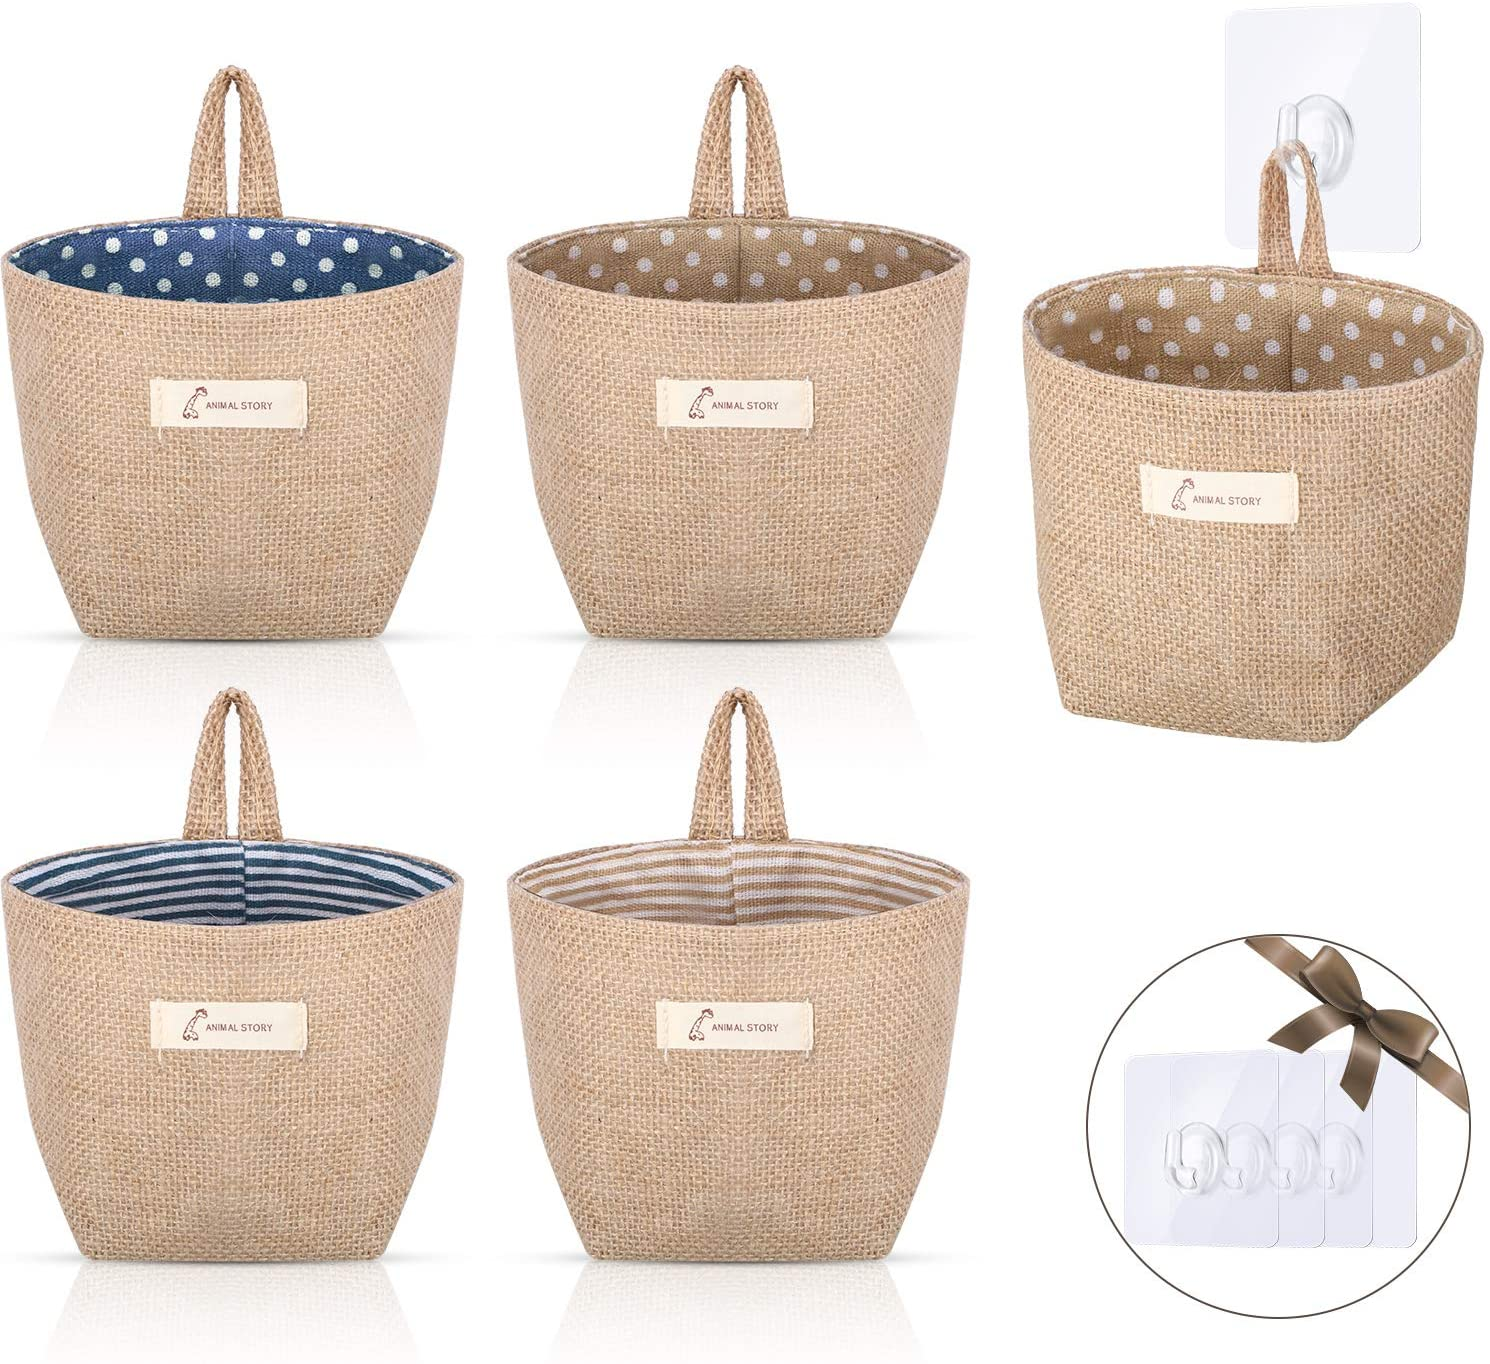 5 Pieces Wall Hanging Storage Bags Foldable Storage Basket Bag Linen Storage Basket with 5 Pieces Seamless Adhesive Hooks for Home Office Wall Closet Organizing and Decorating